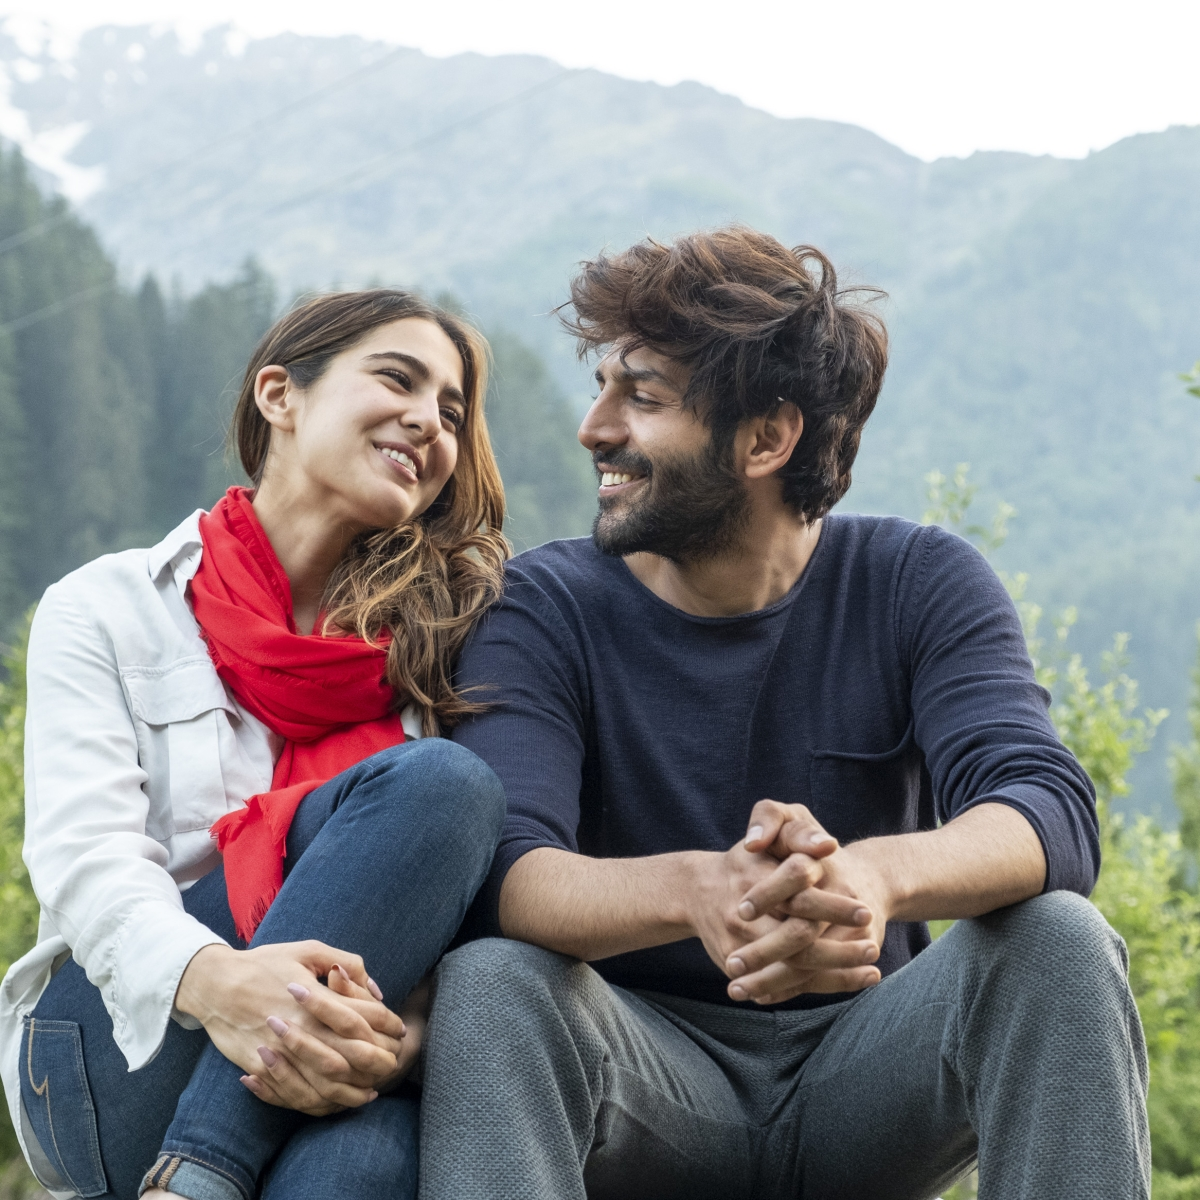 'Love Aaj Kal' review: It's more of director Imtiaz Ali's journey into the mystery of love